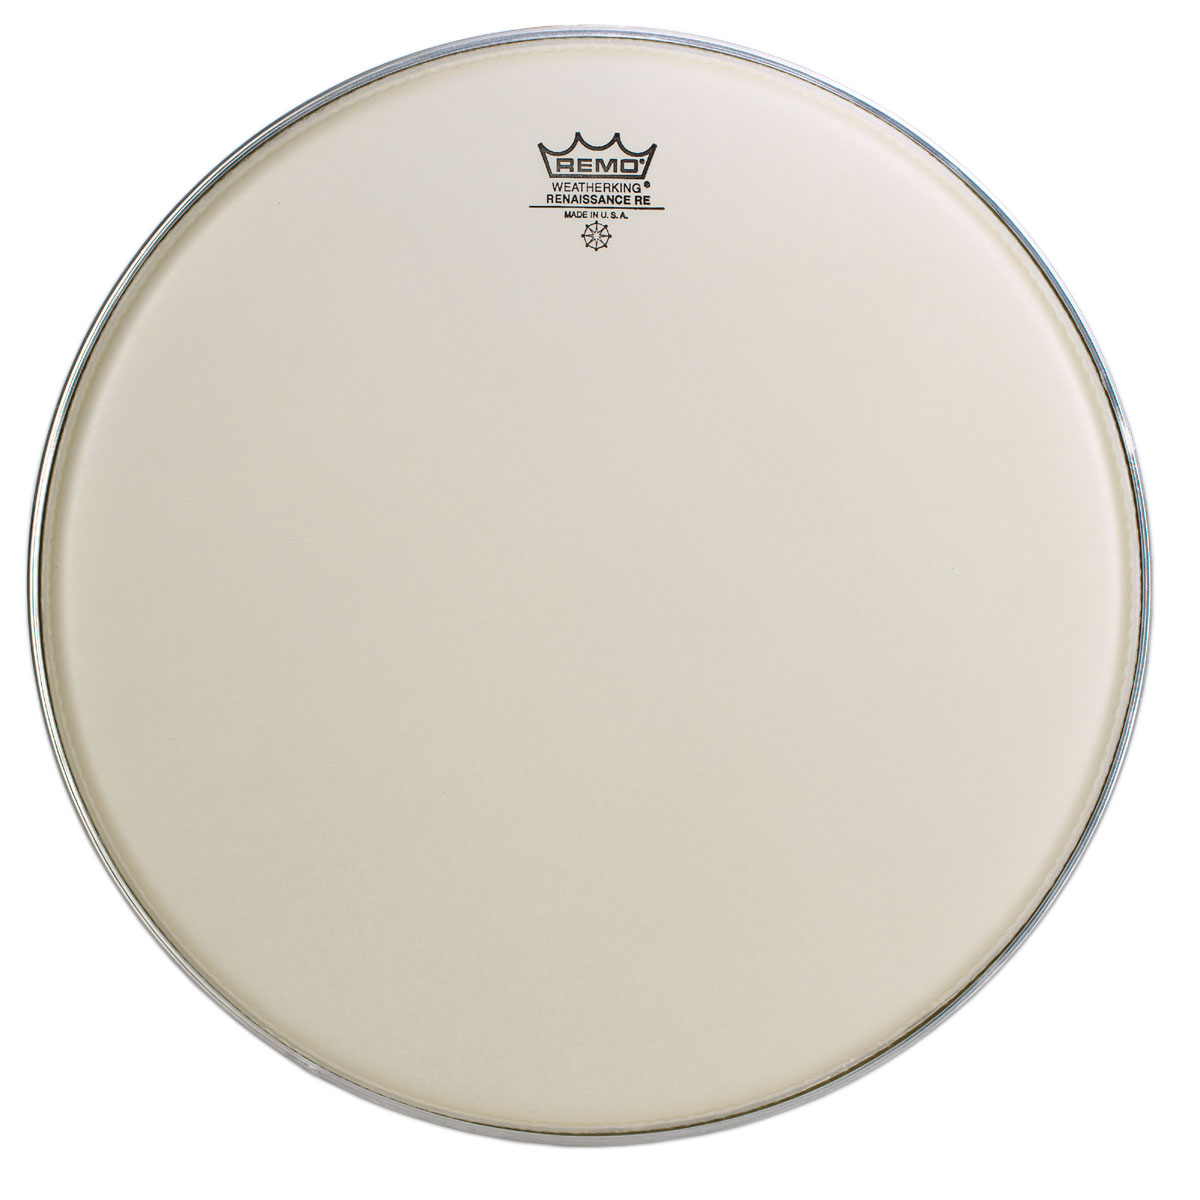 "Remo 8"" Emperor Renaissance Crimplock Marching Tenor Drum Head"